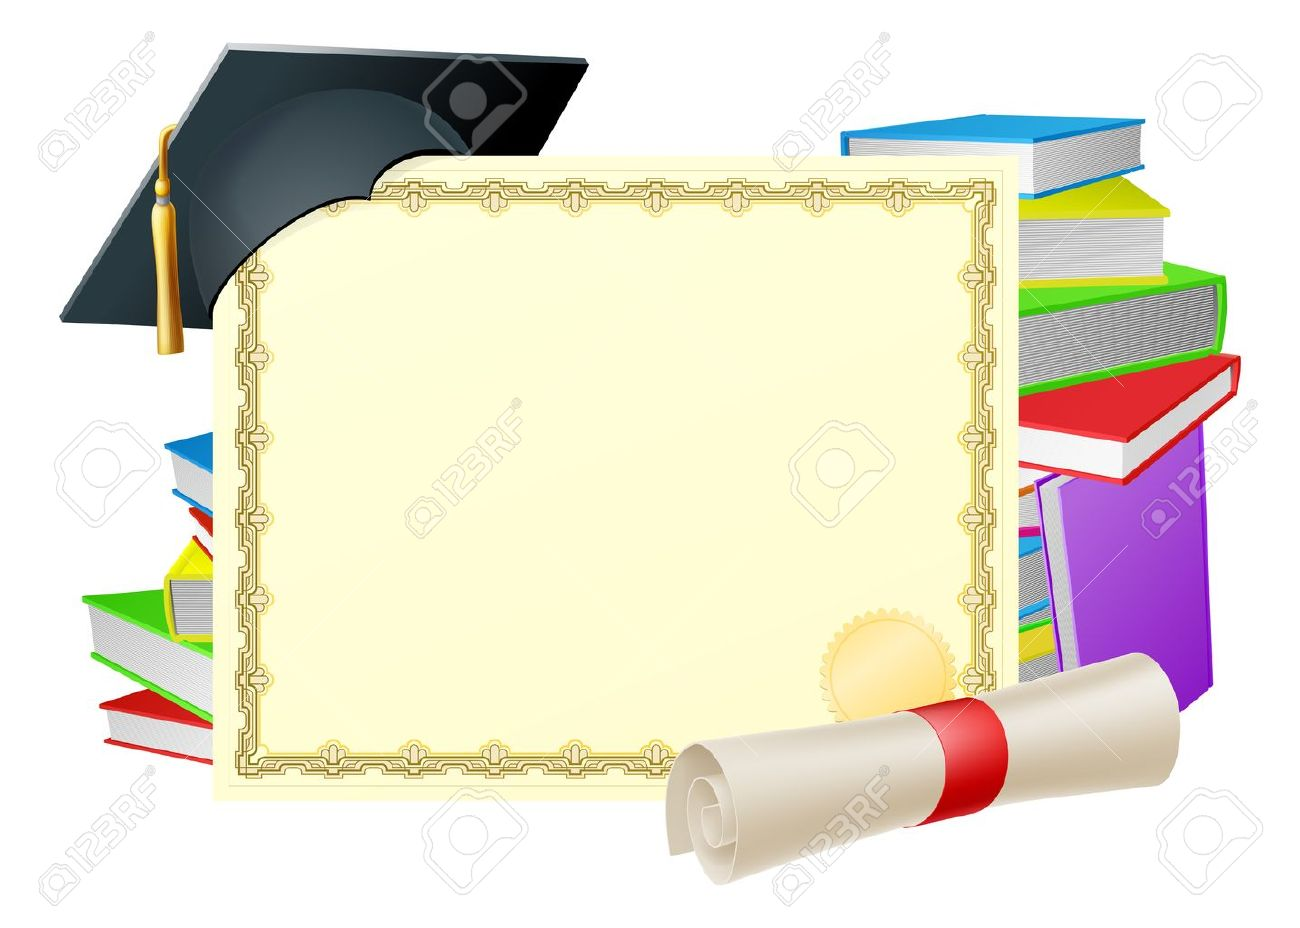 Graduation background clipart picture freeuse library Graduation background clipart 9 » Clipart Station picture freeuse library